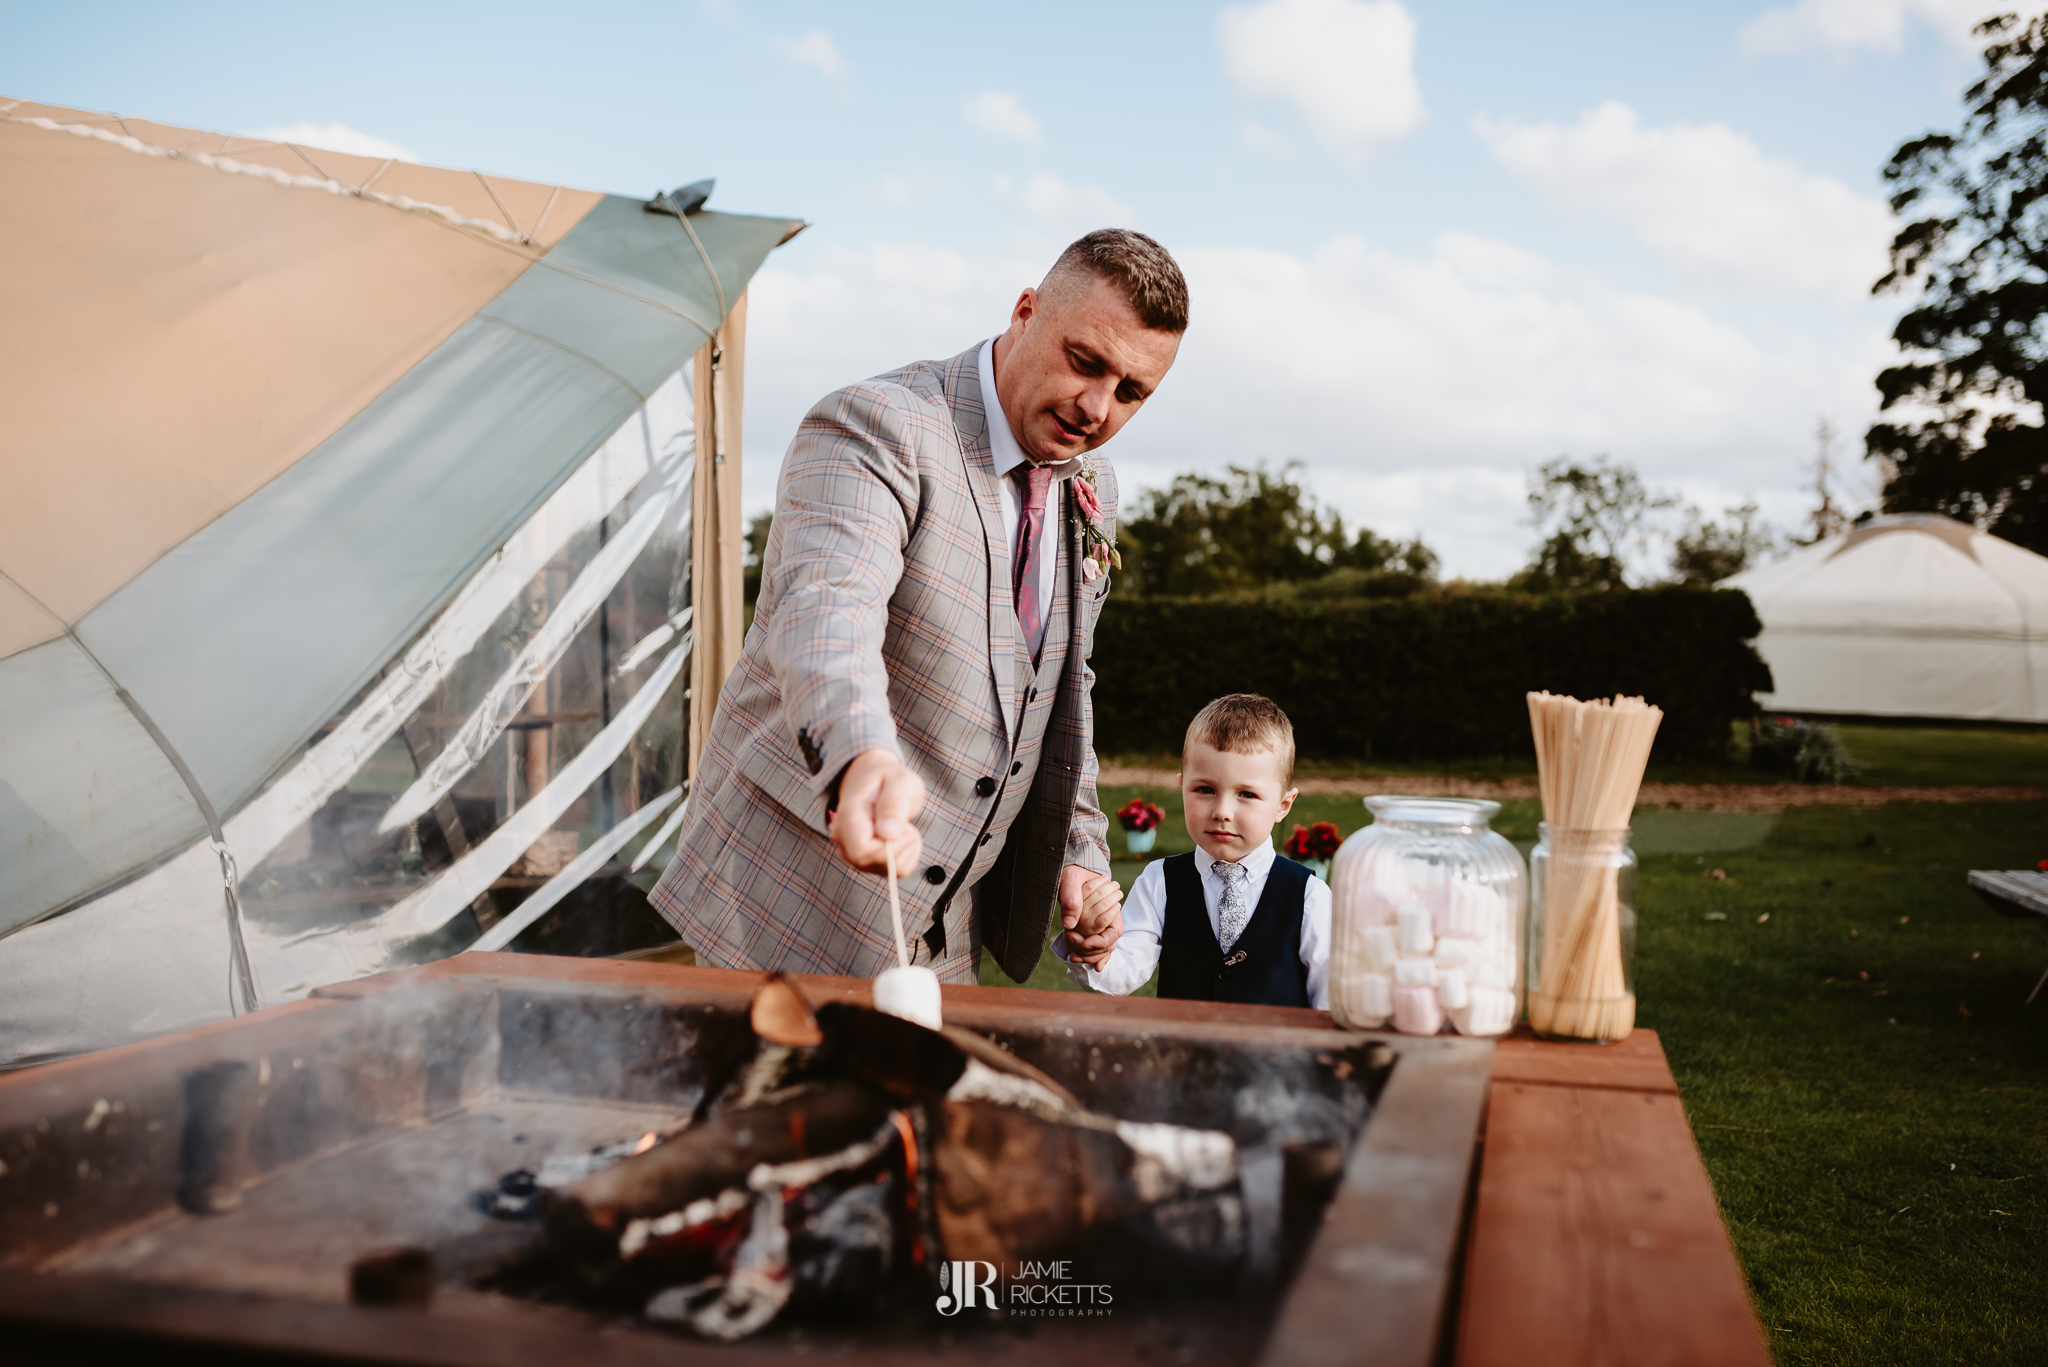 Wroxeter-Hotel-Wedding-Photography-In-Shropshire-By-Shropshire-Wedding-Photographer-Jamie-Ricketts-184.JPG